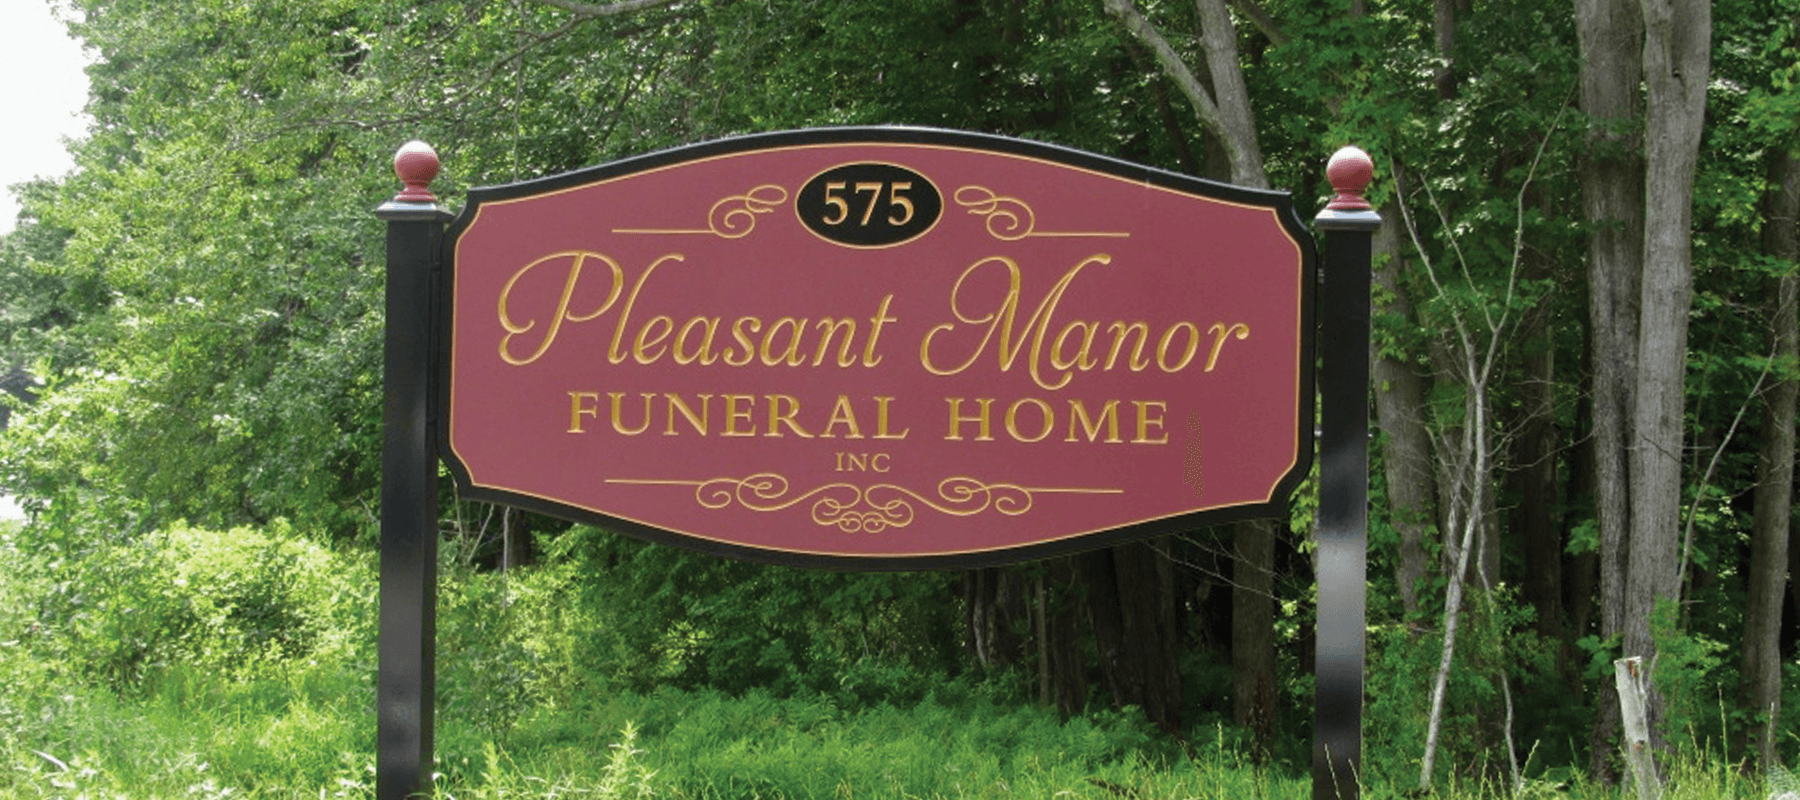 Pleasant manor funeral home thornwood ny funeral cremation header graphic izmirmasajfo